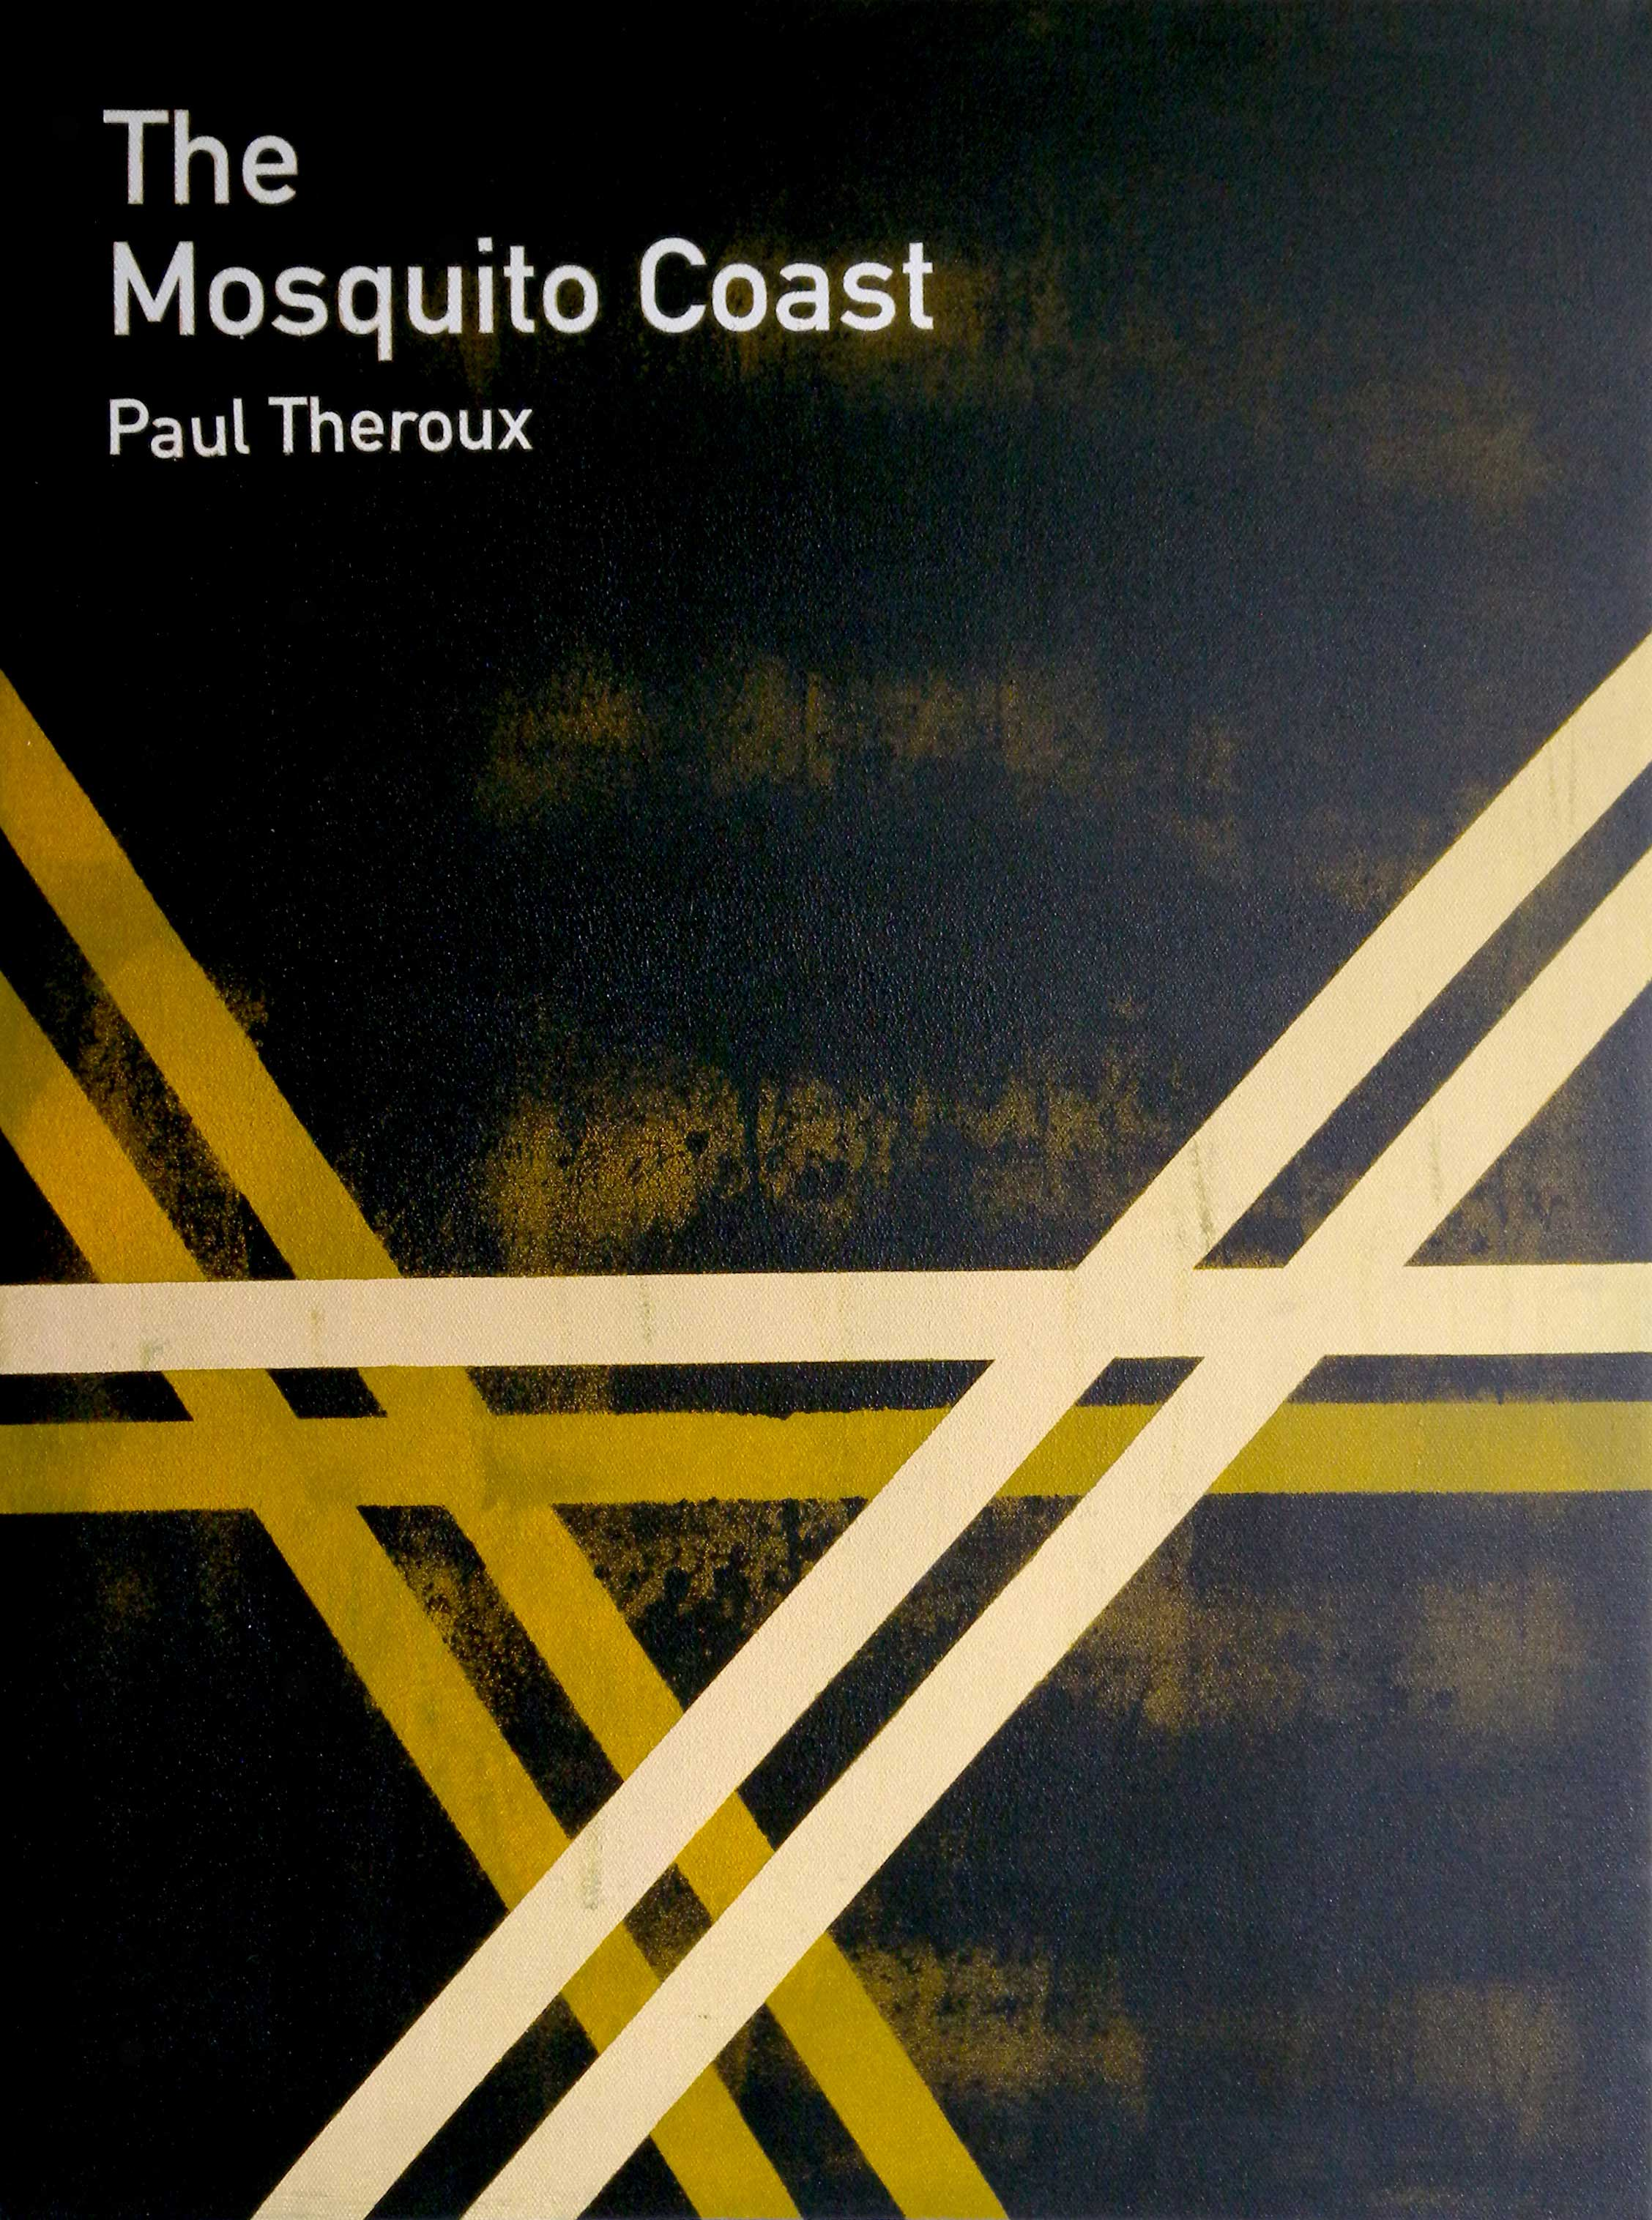 Heman CHONG  The Mosquito Coast / Paul Theroux  2013 Acrylic on canvas 61 x 46 x 3.5 cm